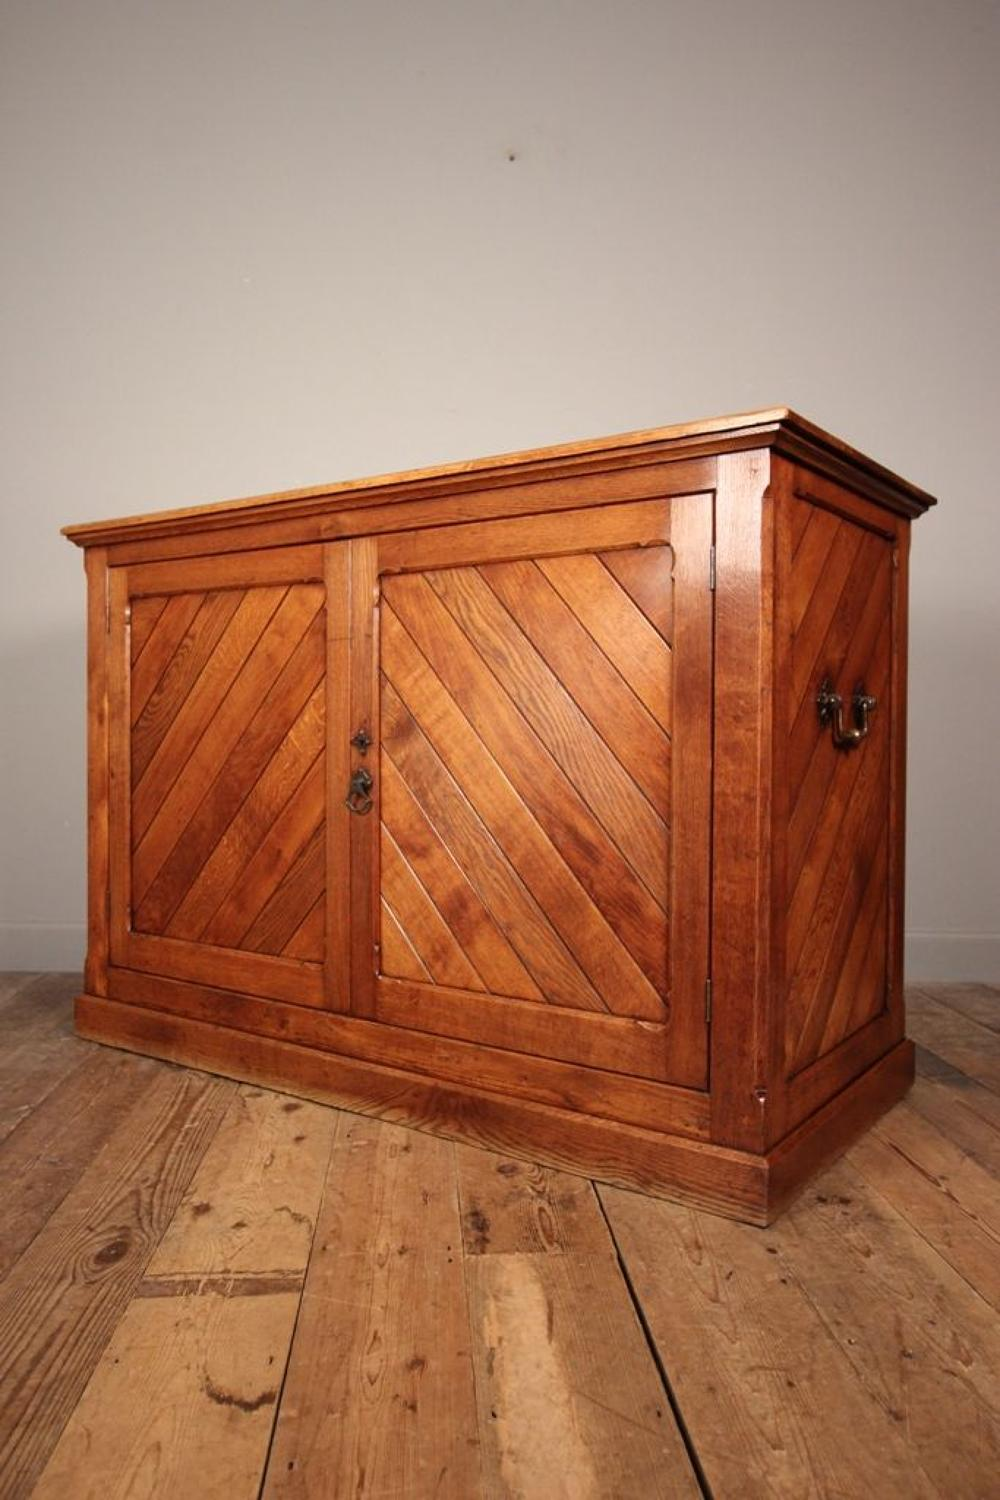 Striking 19th C Gothic Oak Shop Counter Cabinet